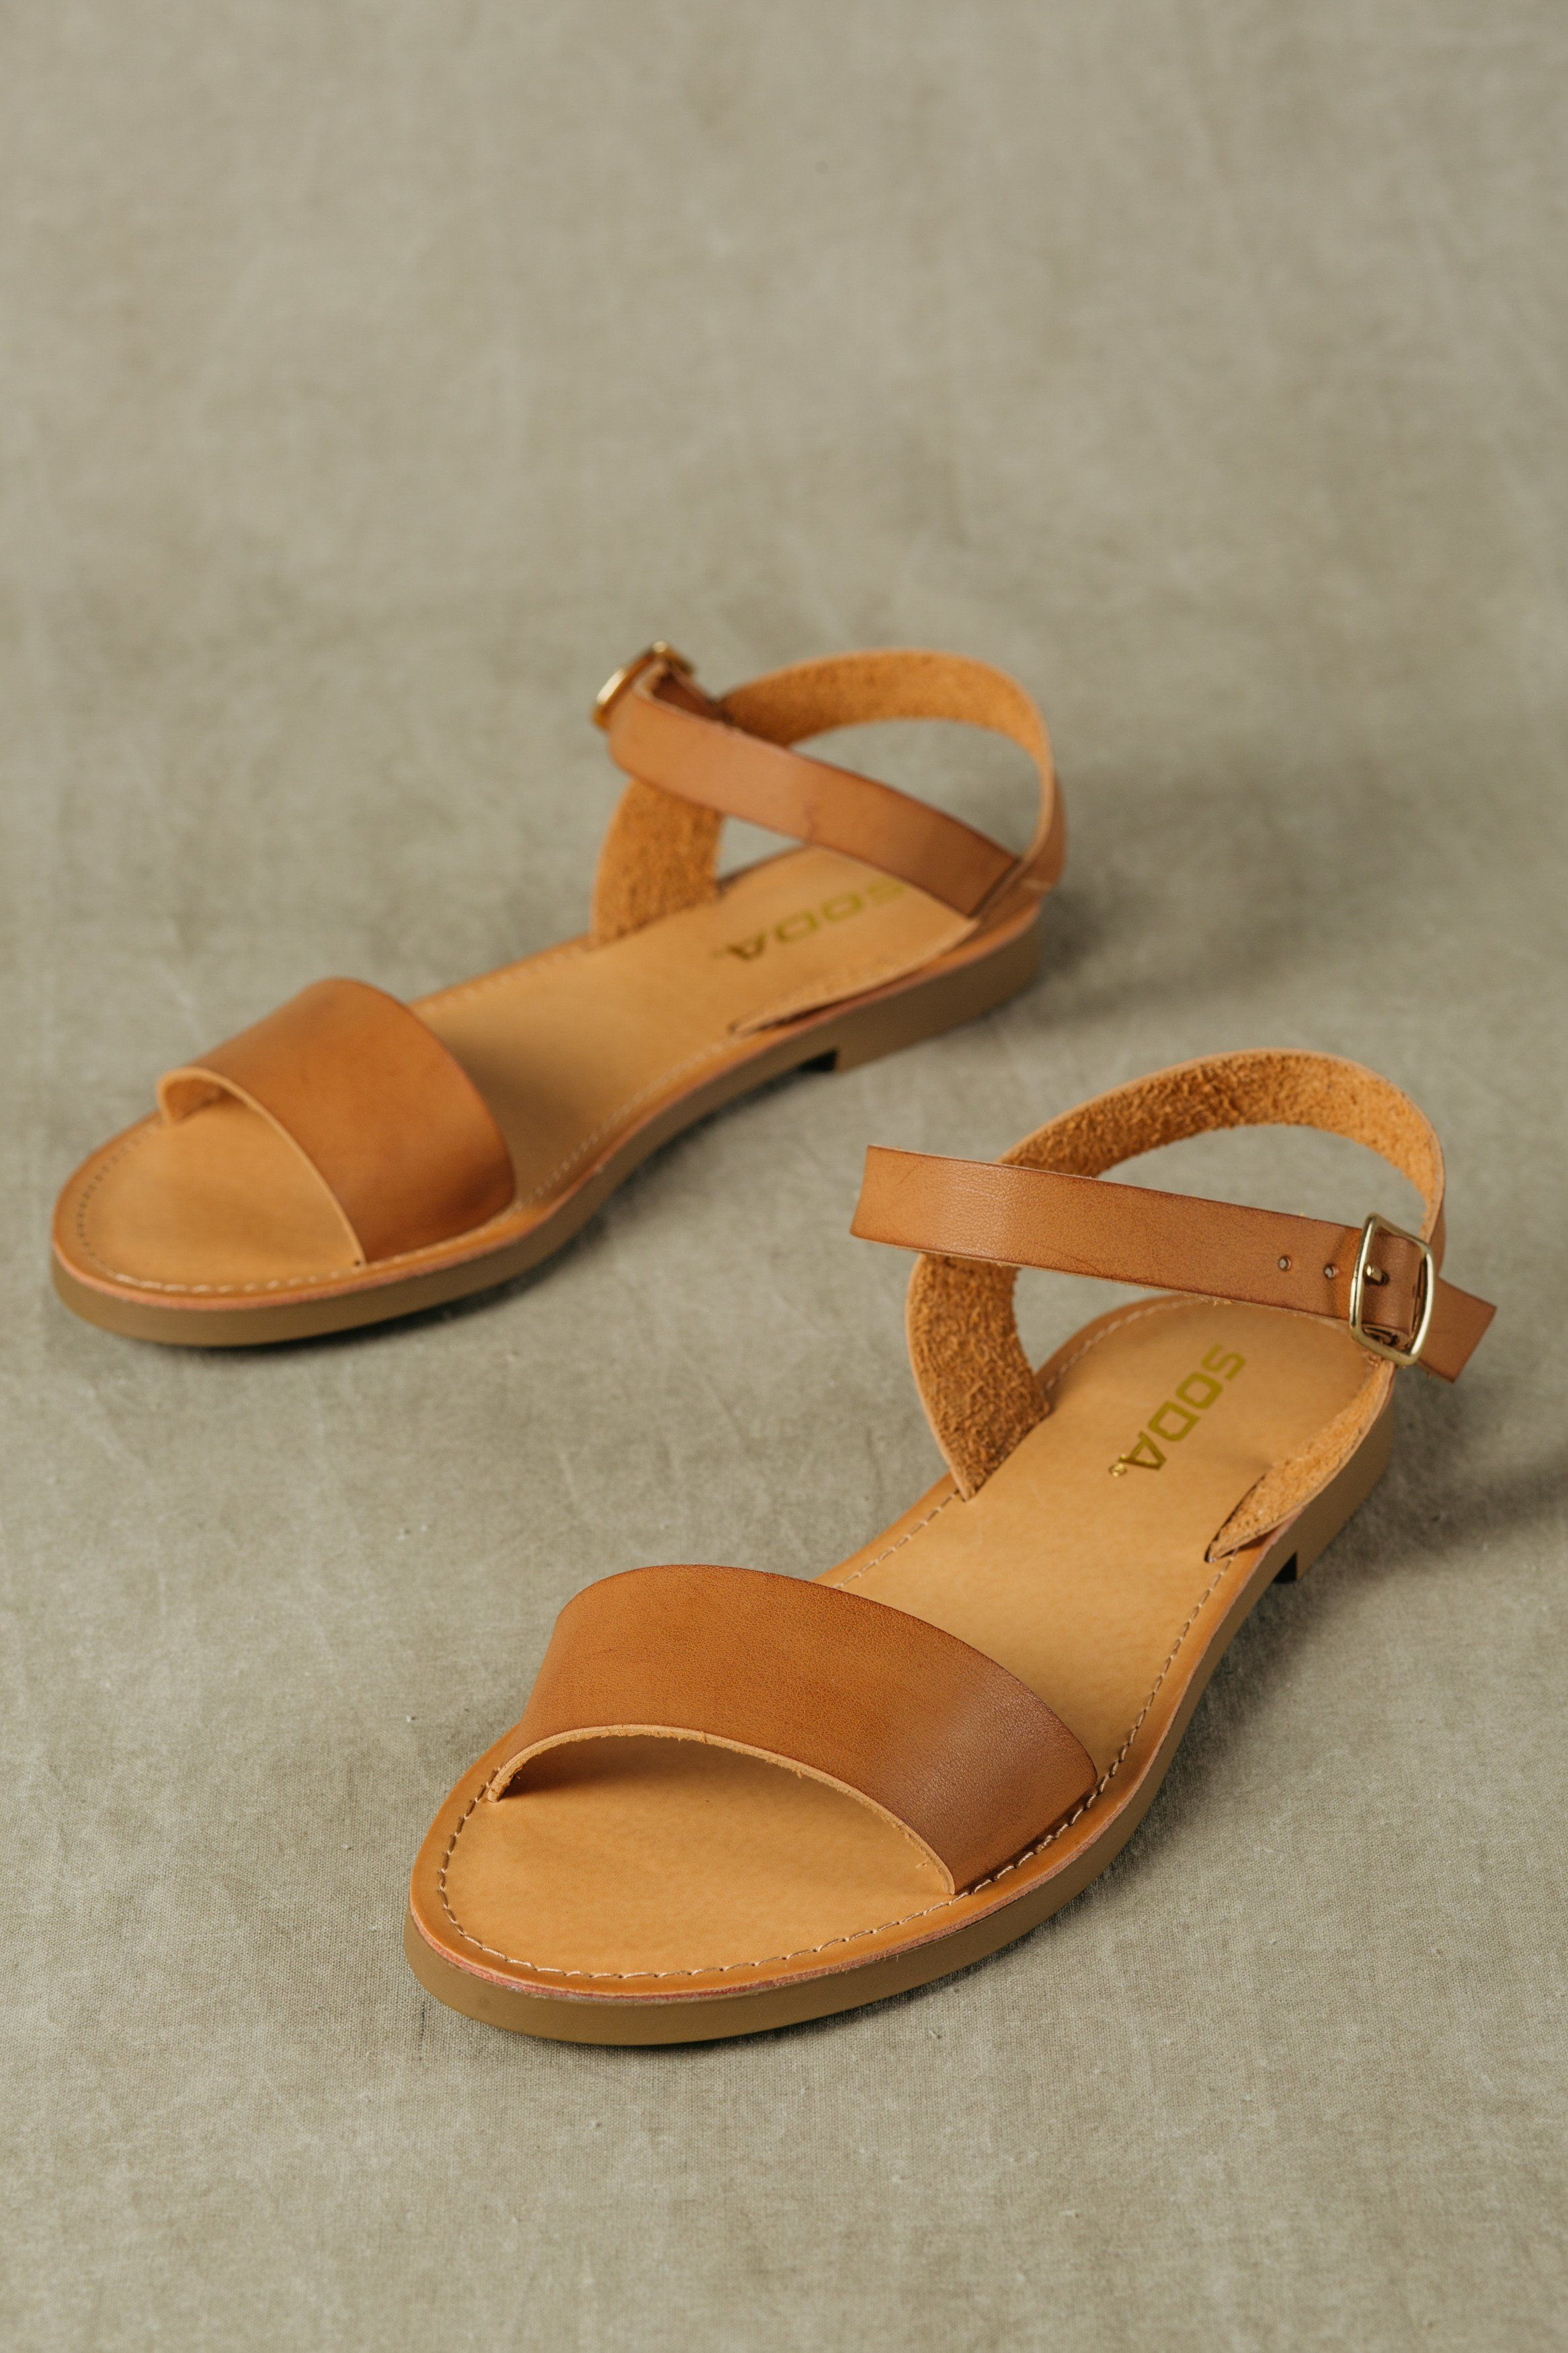 6effa985c5ed Paired Just For You Sandals in 2019